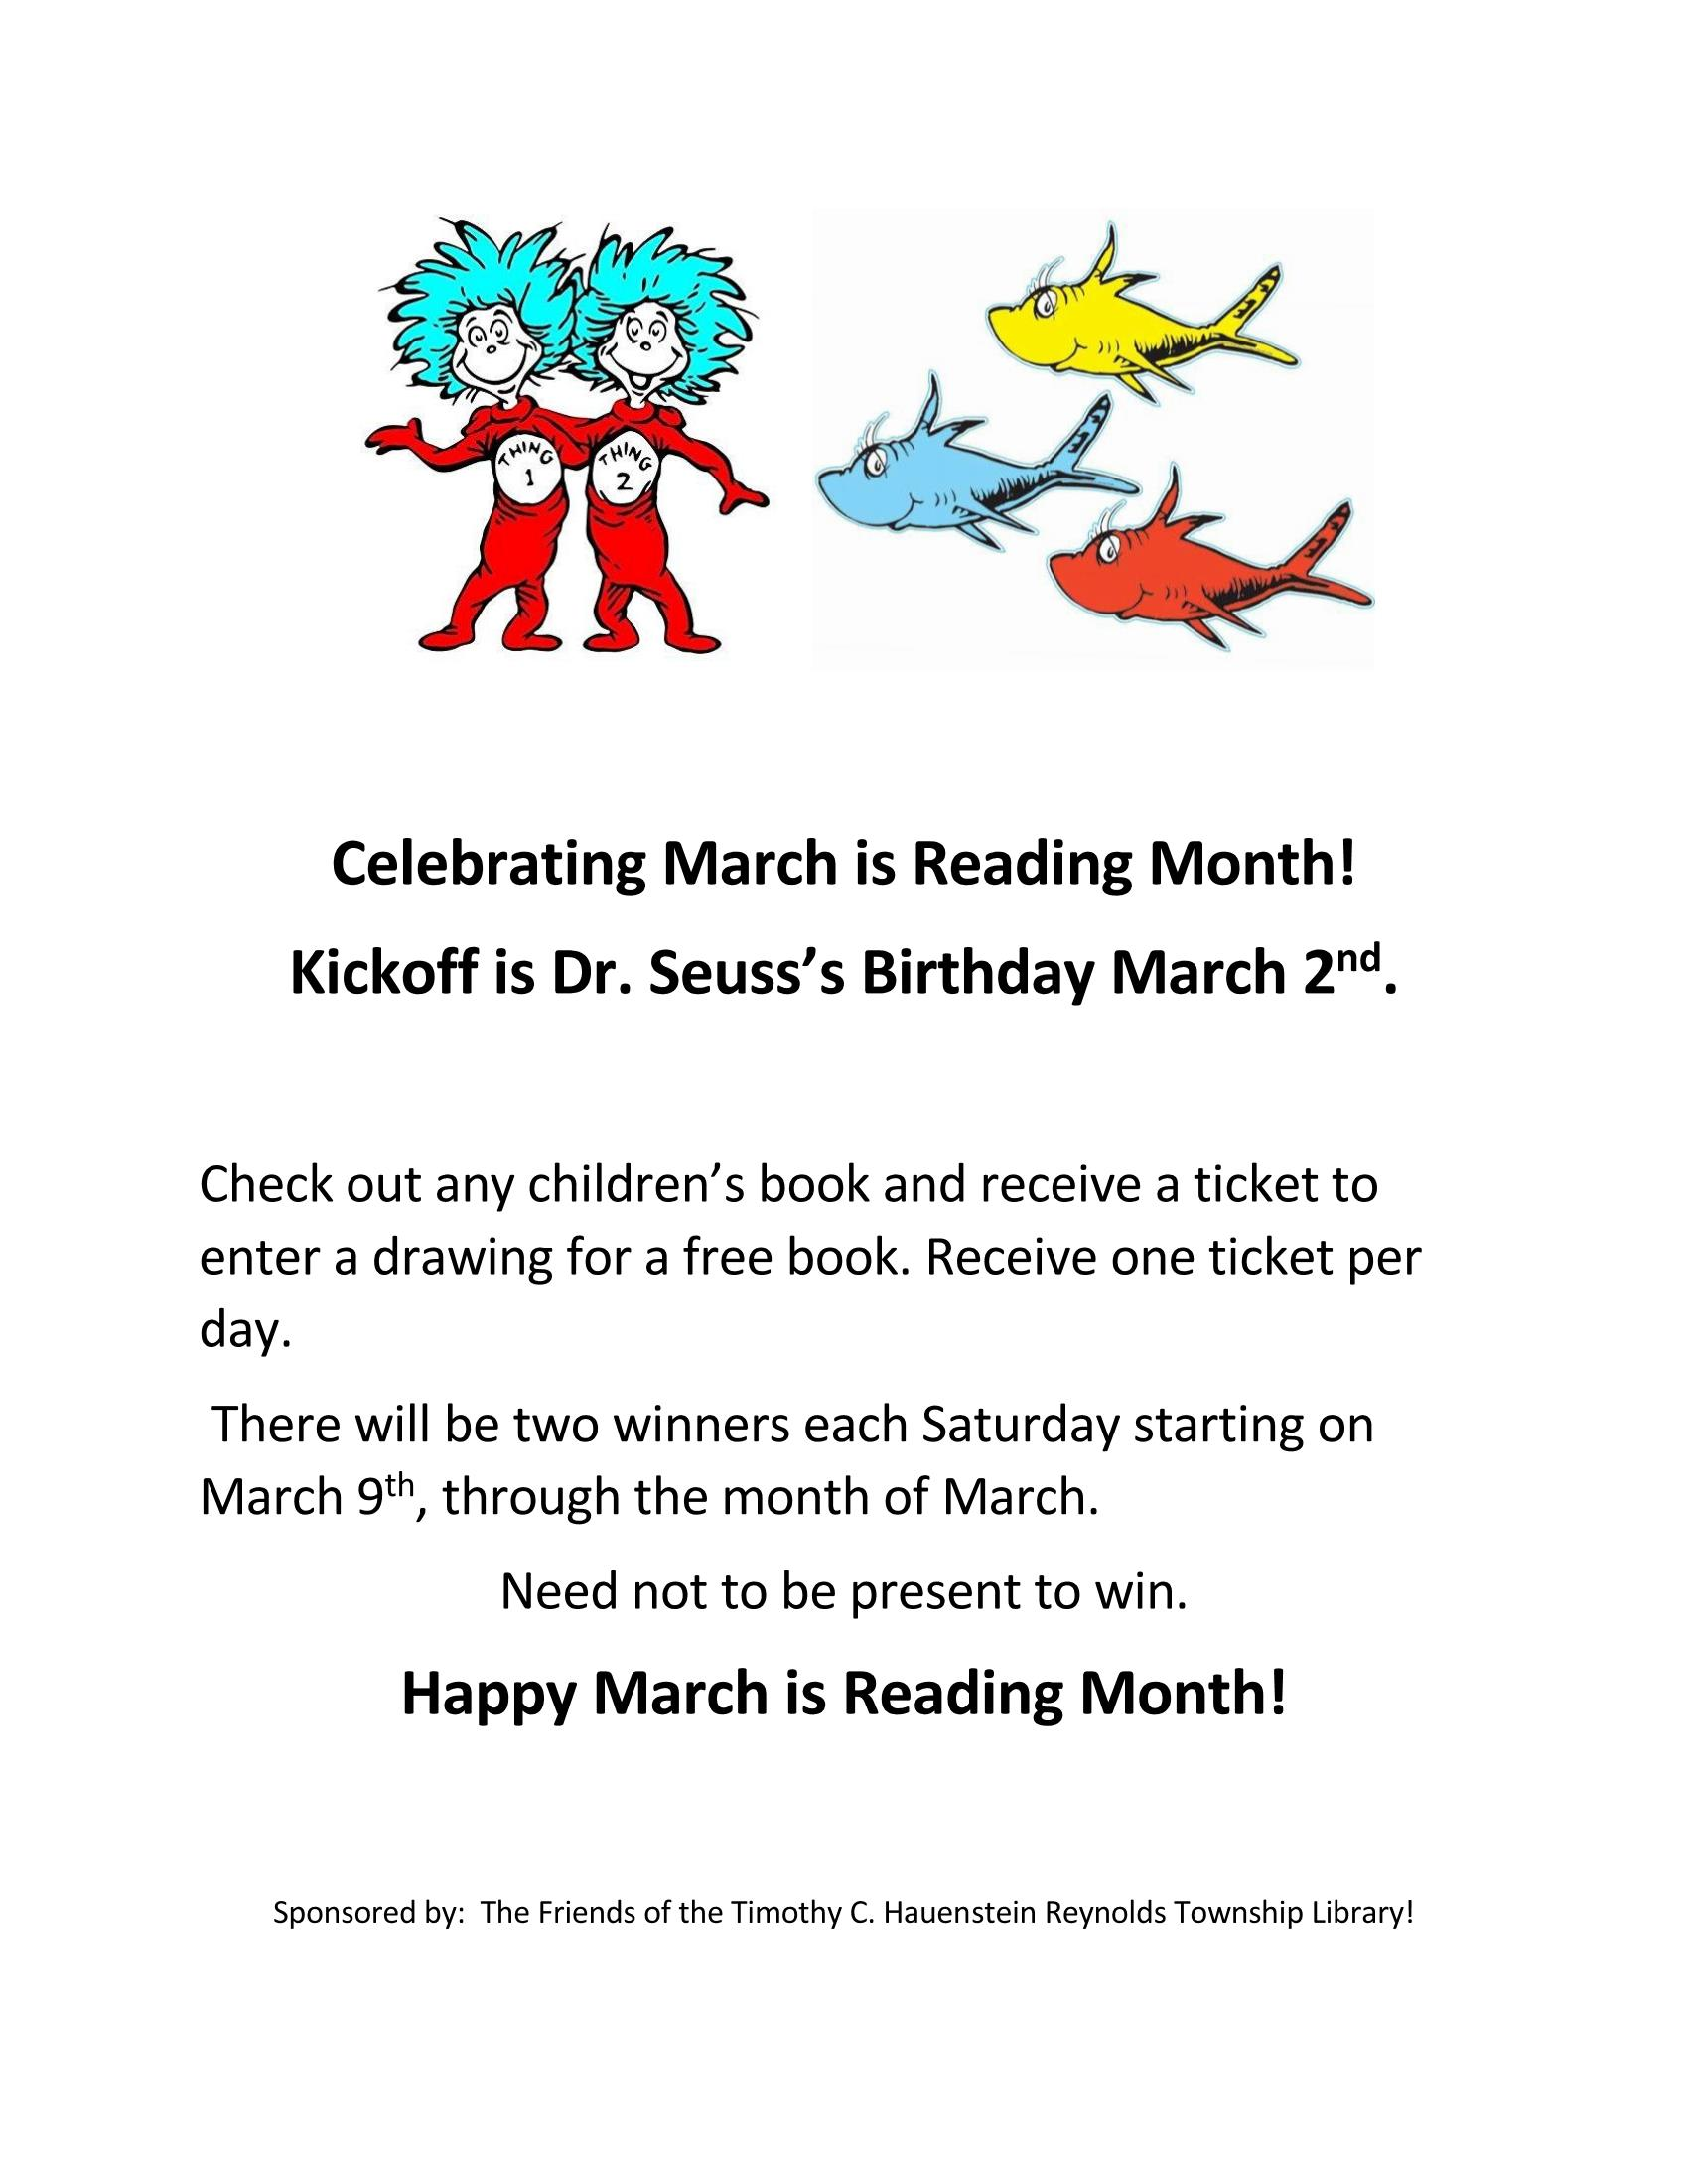 Celebrating March is Reading Month_Page_1.jpeg